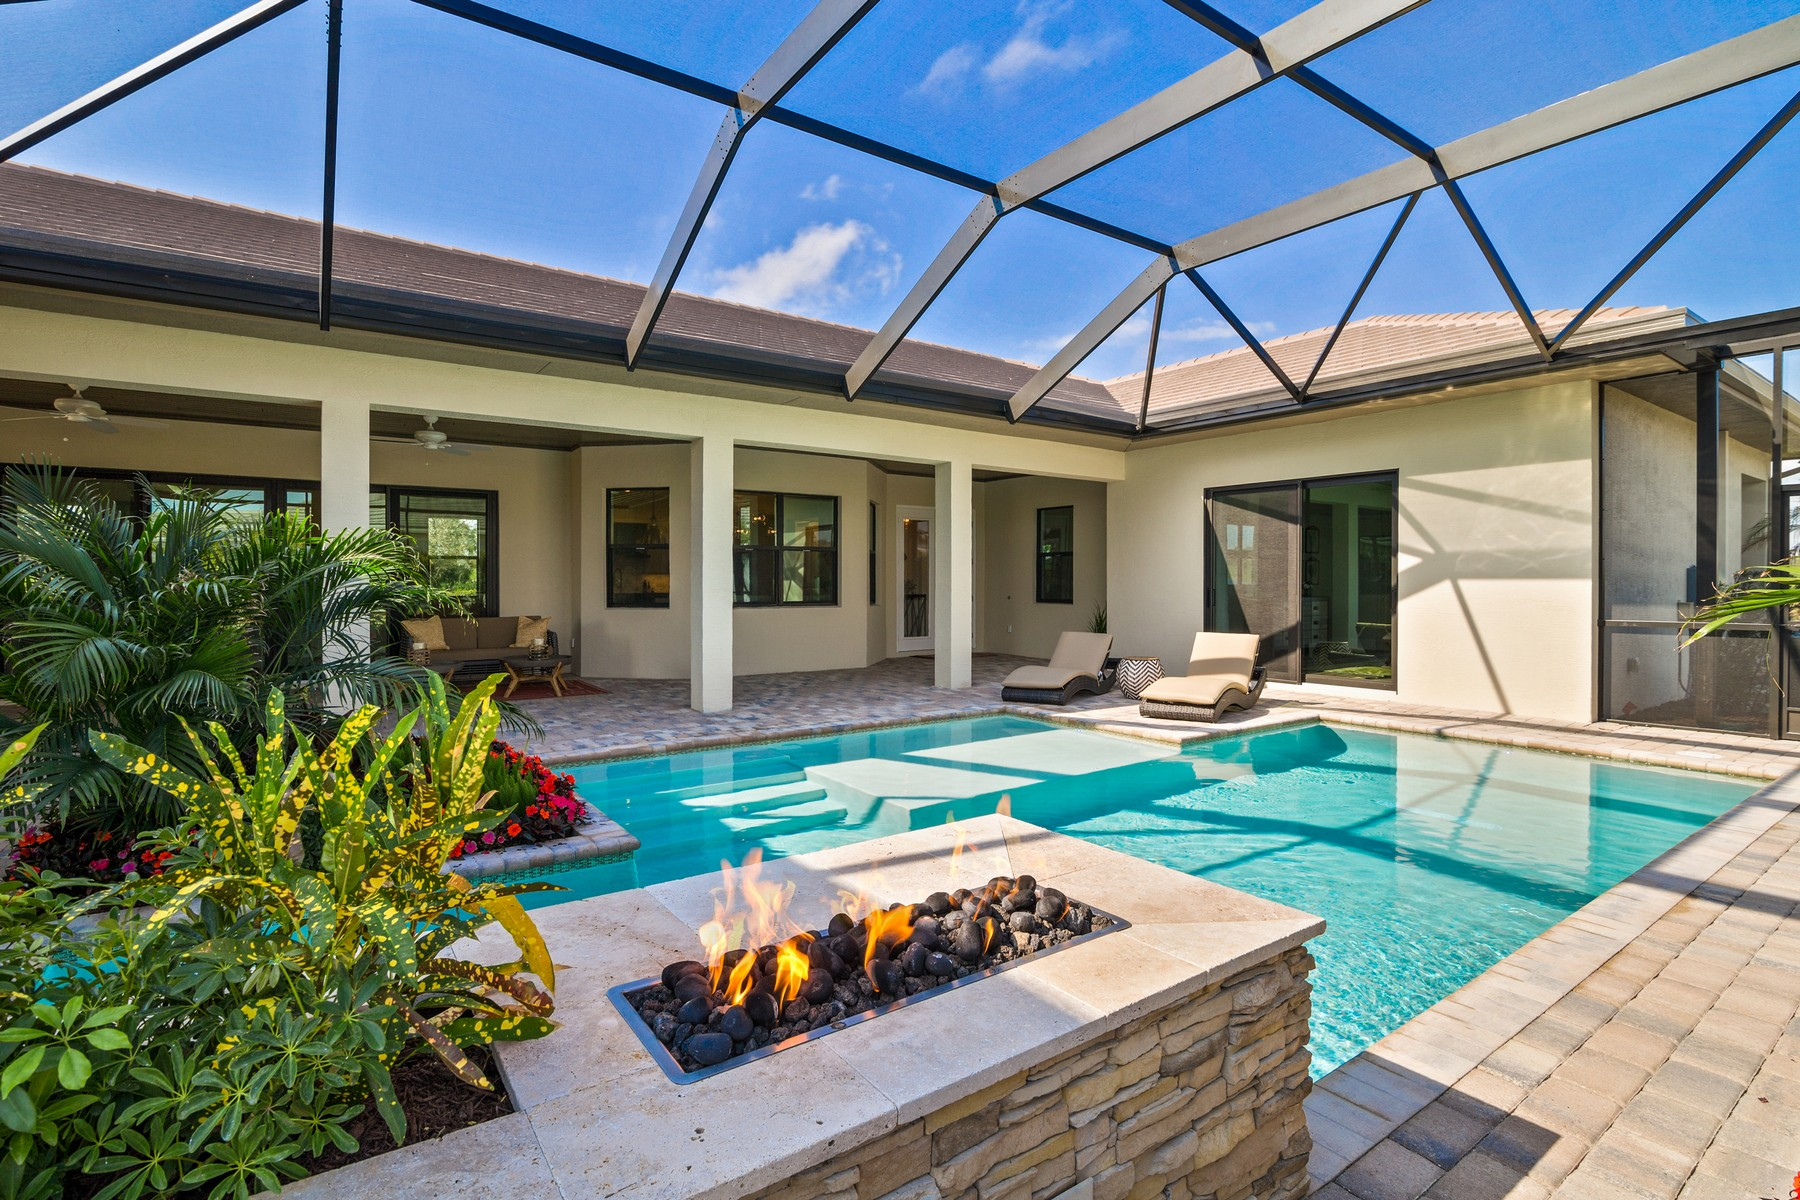 Single Family Homes for Sale at Luxury New Home in the Reserve at Grand Harbor 2348 Grand Harbor Reserve Square Vero Beach, Florida 32967 United States